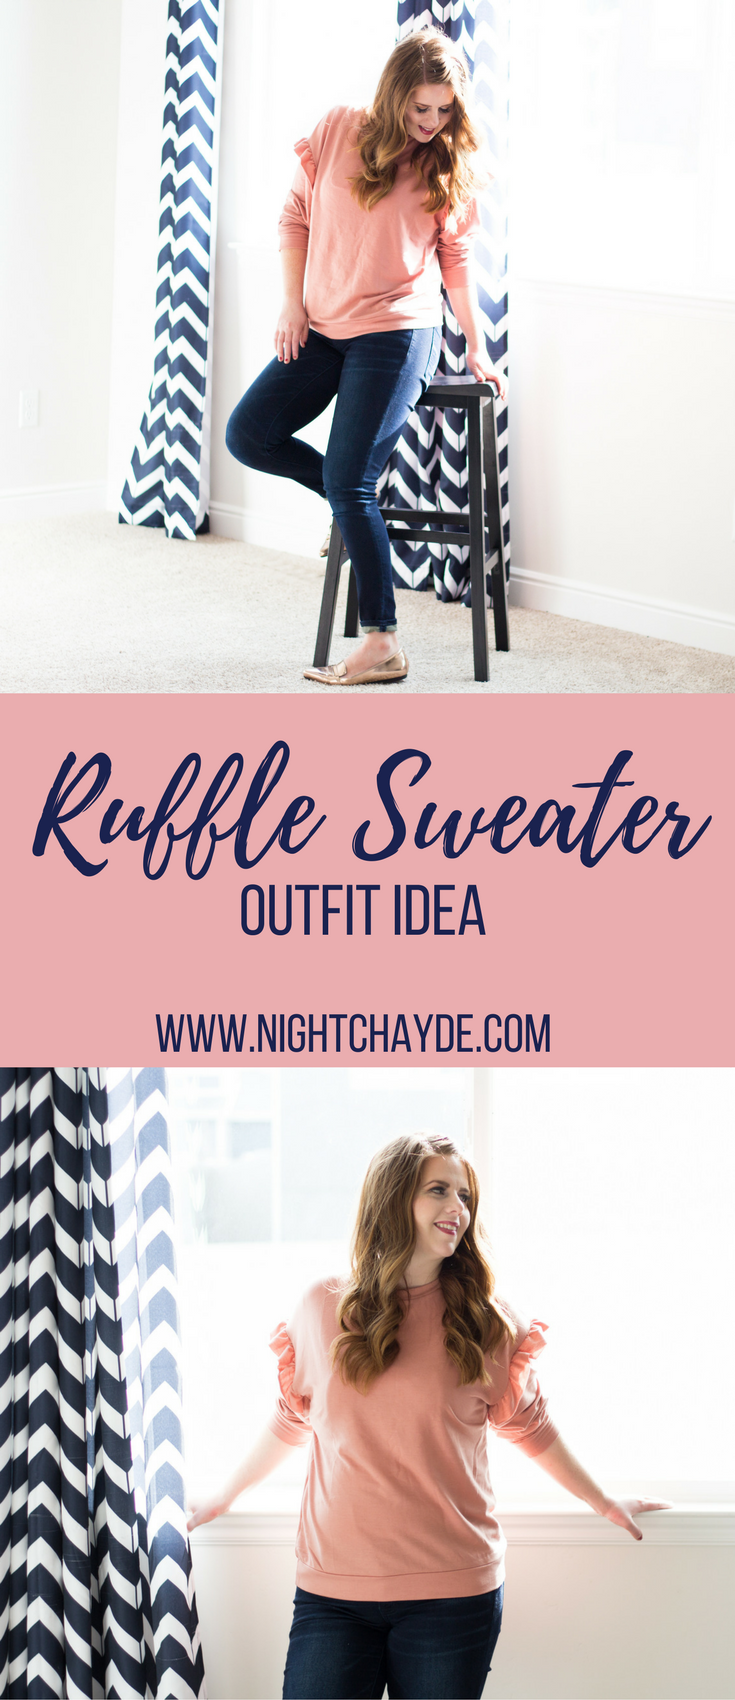 The perfect mauve ruffle sweater outfit idea for any occasion. How to style ruffle sweaters and where to buy them on a budget.